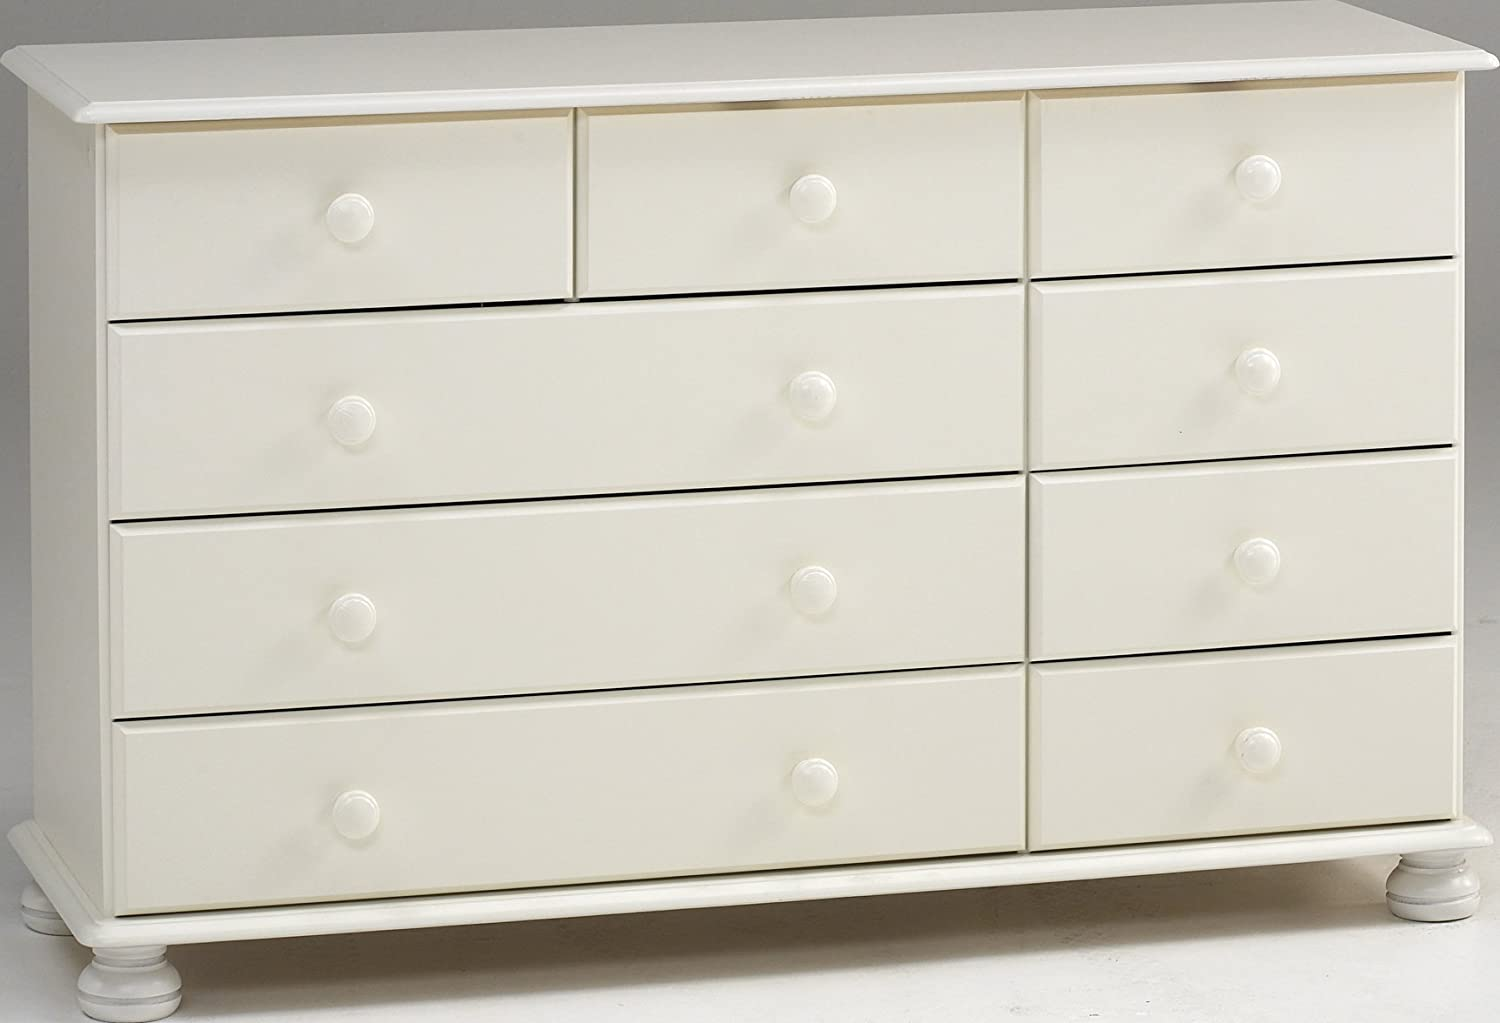 Steens Richmond 2/3/4 Drawer Chest of Drawers, White - Steens Richmond Ottoman Storage Chest, White: Amazon.co.uk